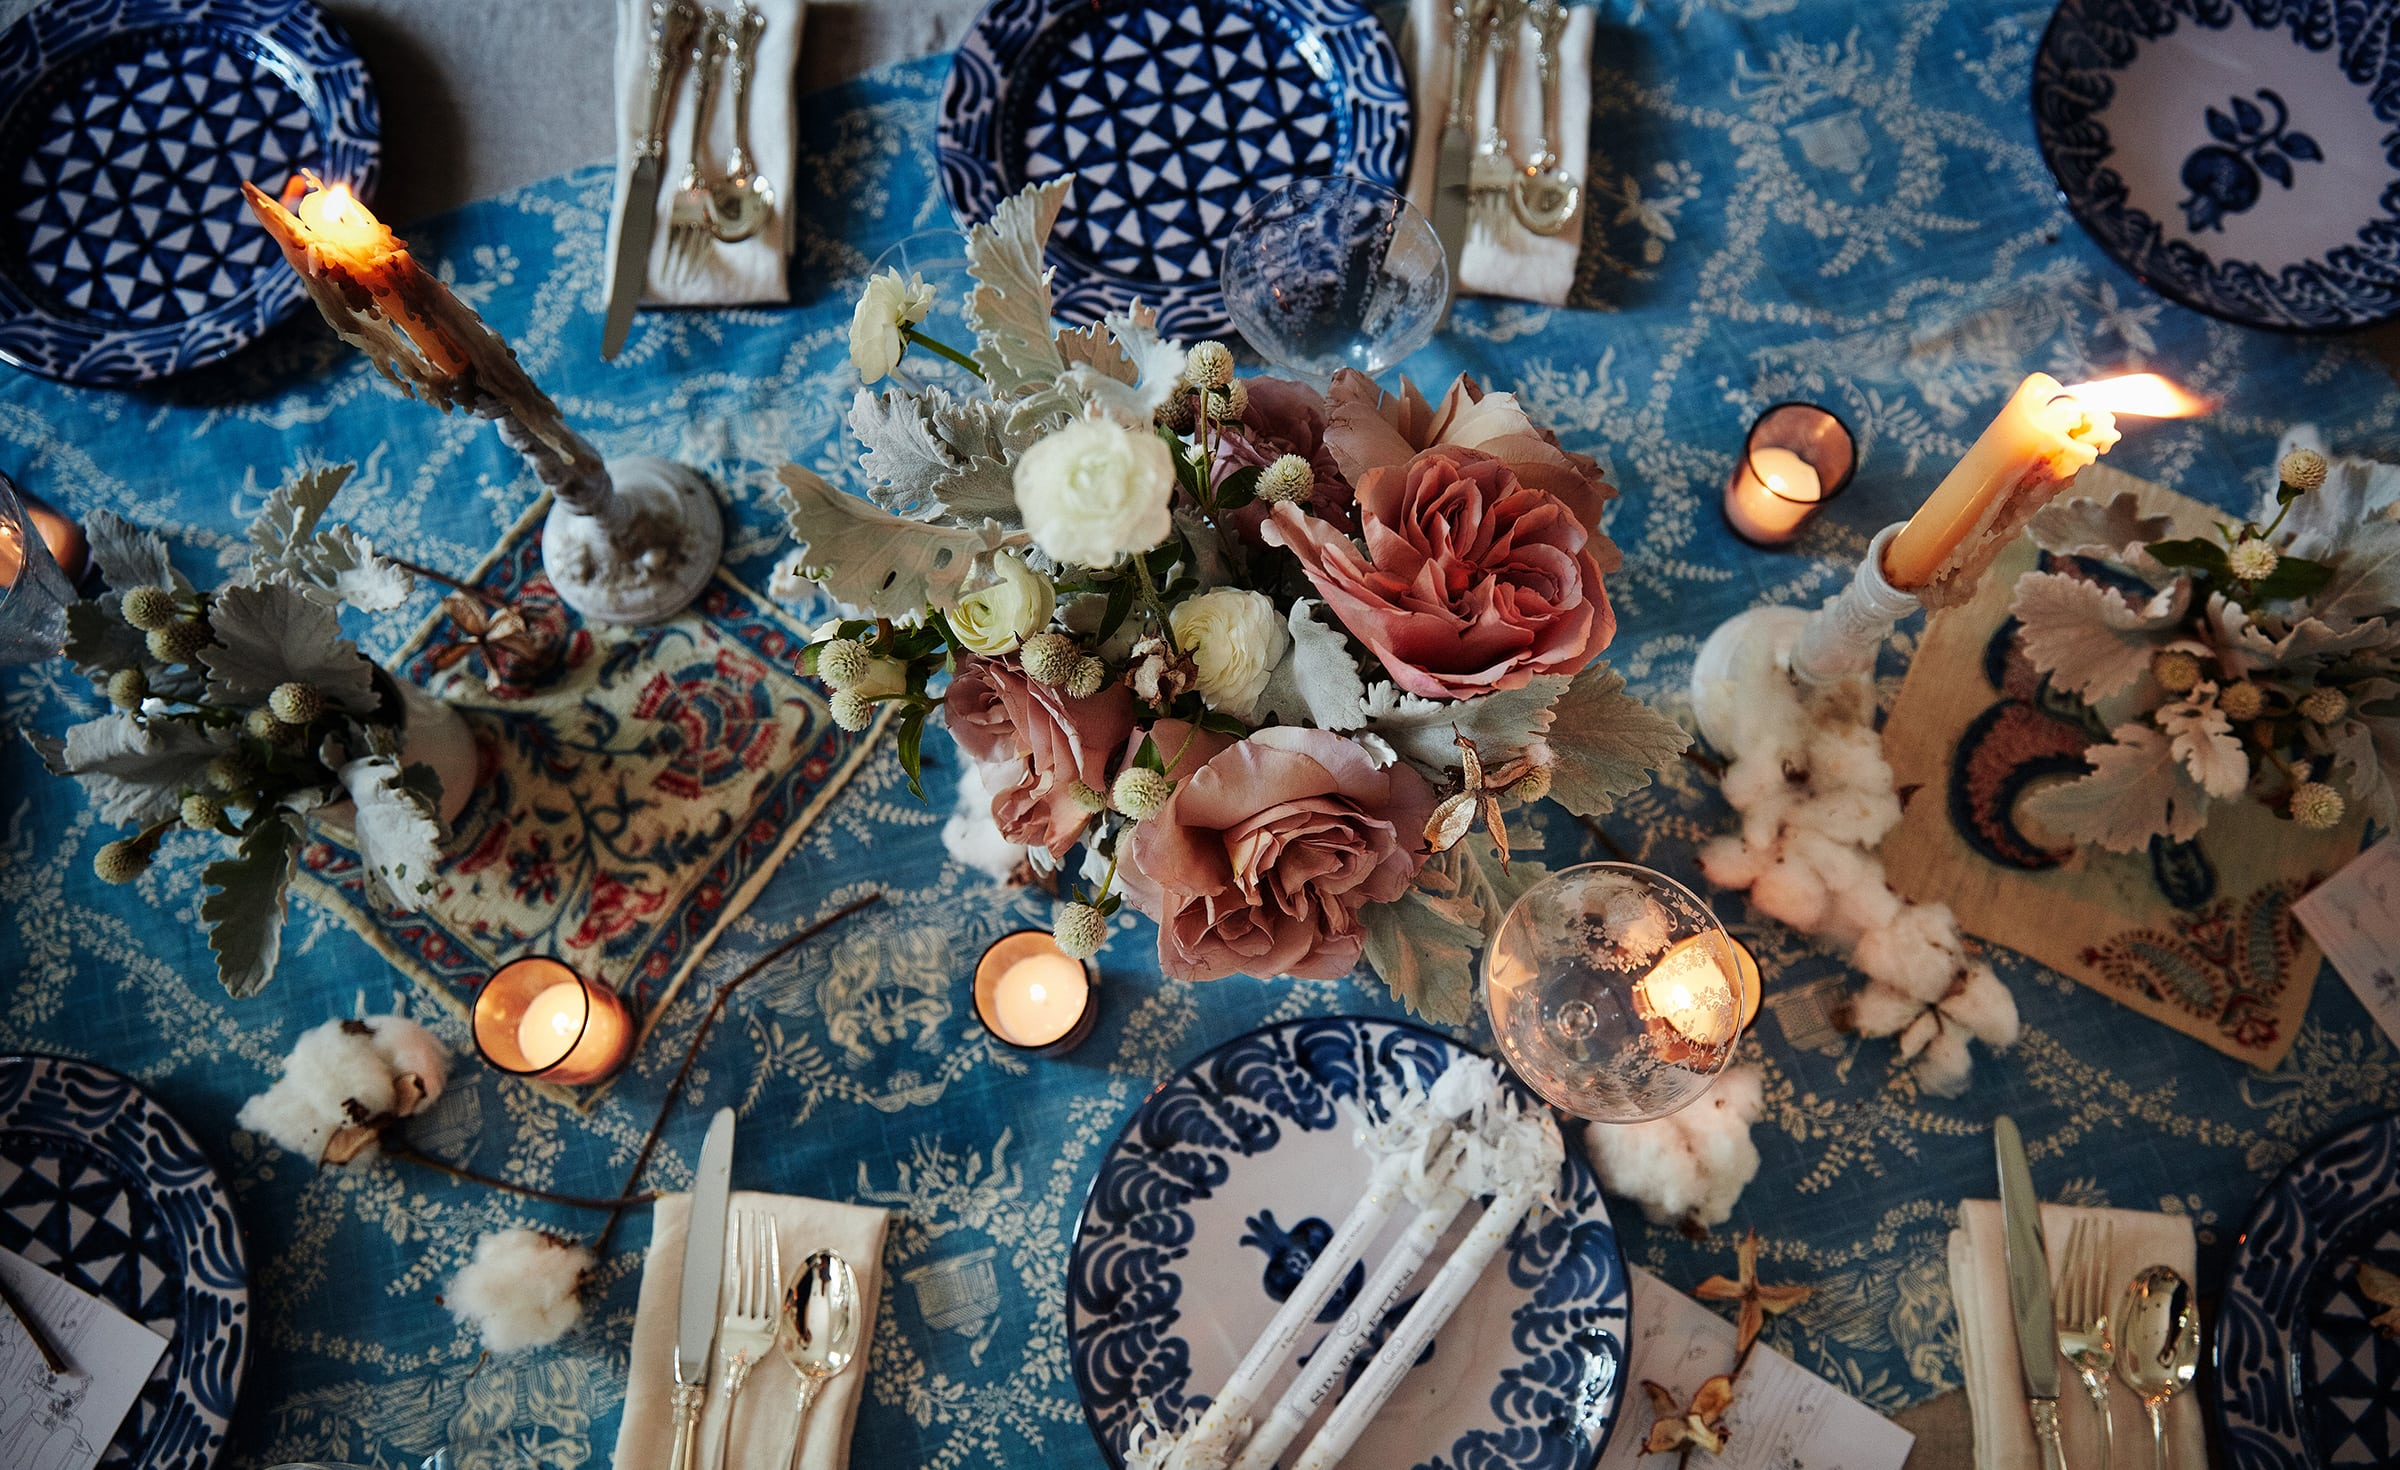 Tableware From Irving and Morrison in London